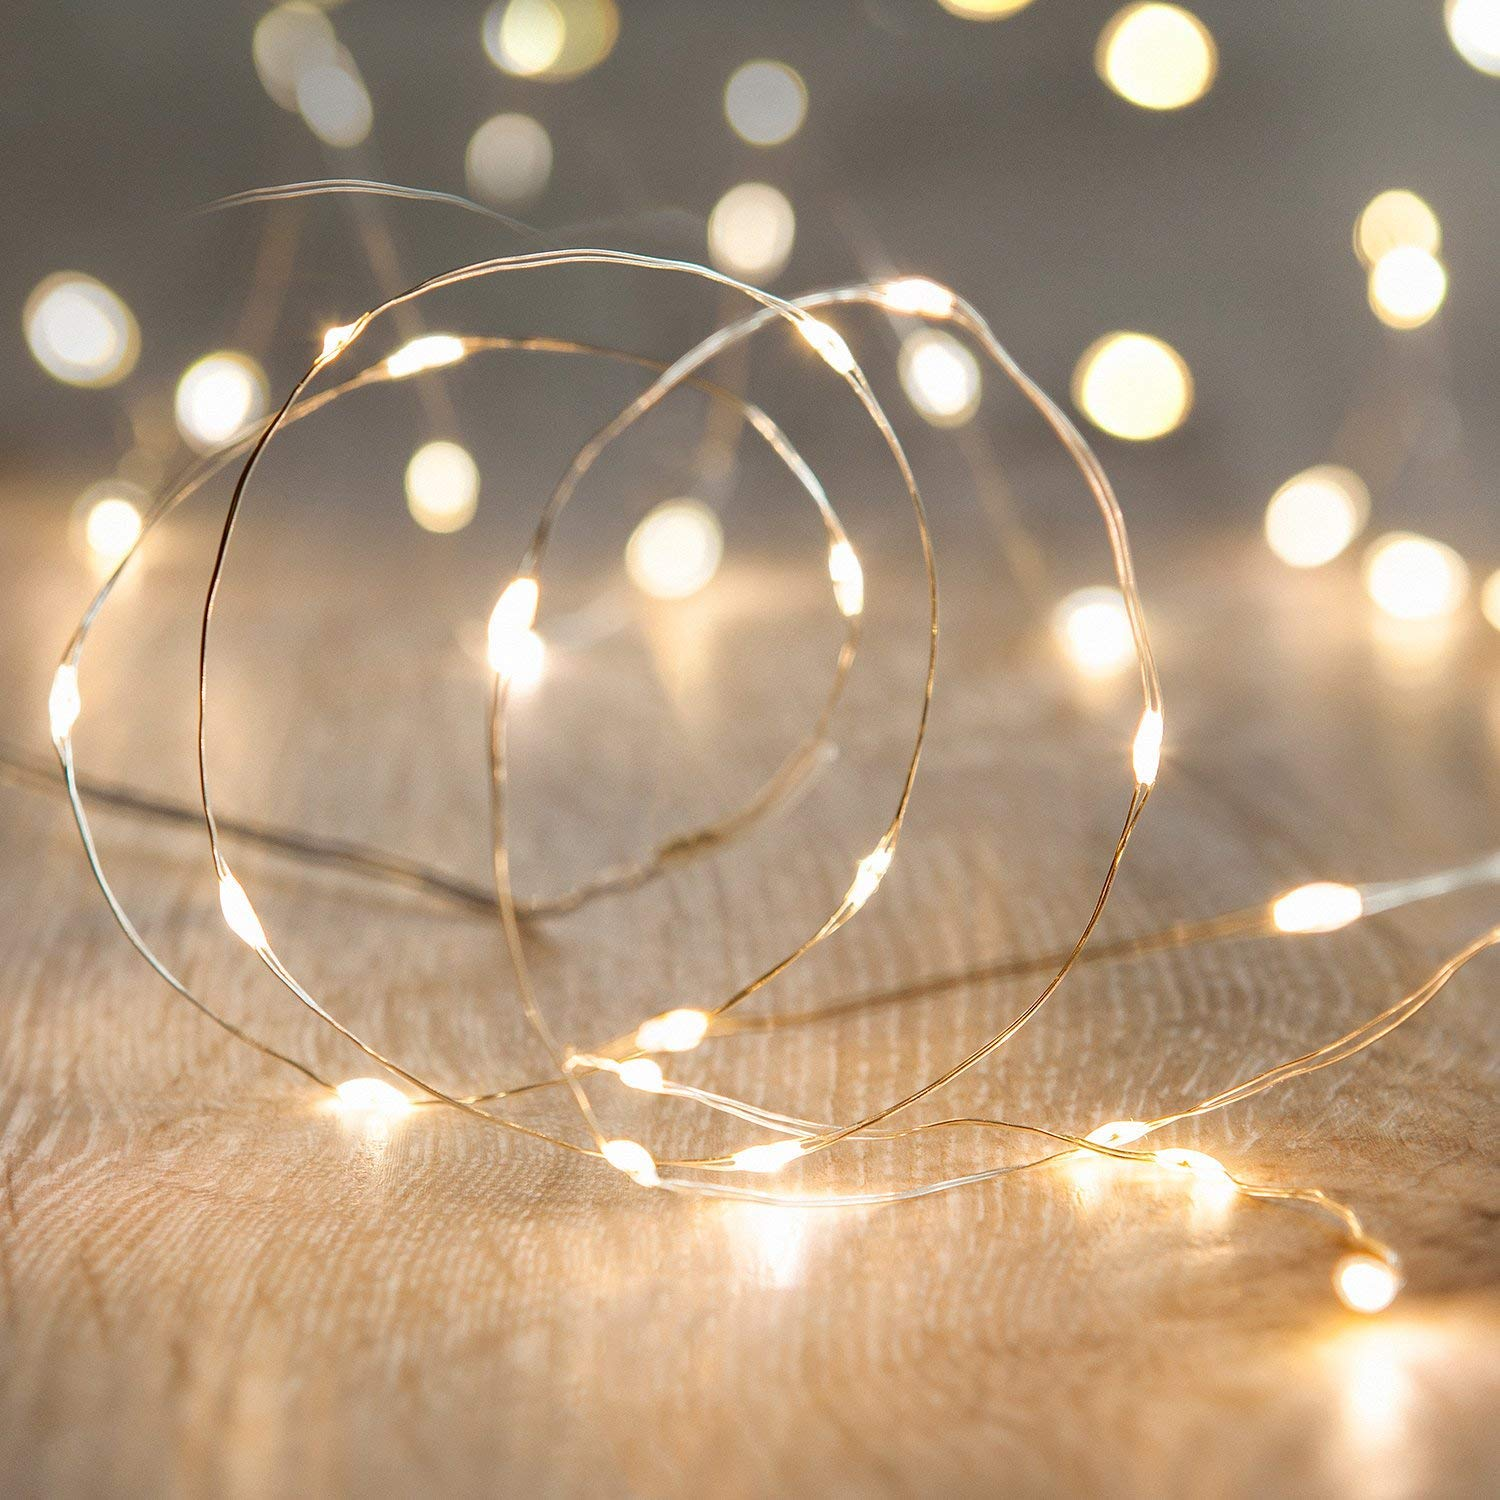 Fairy light string